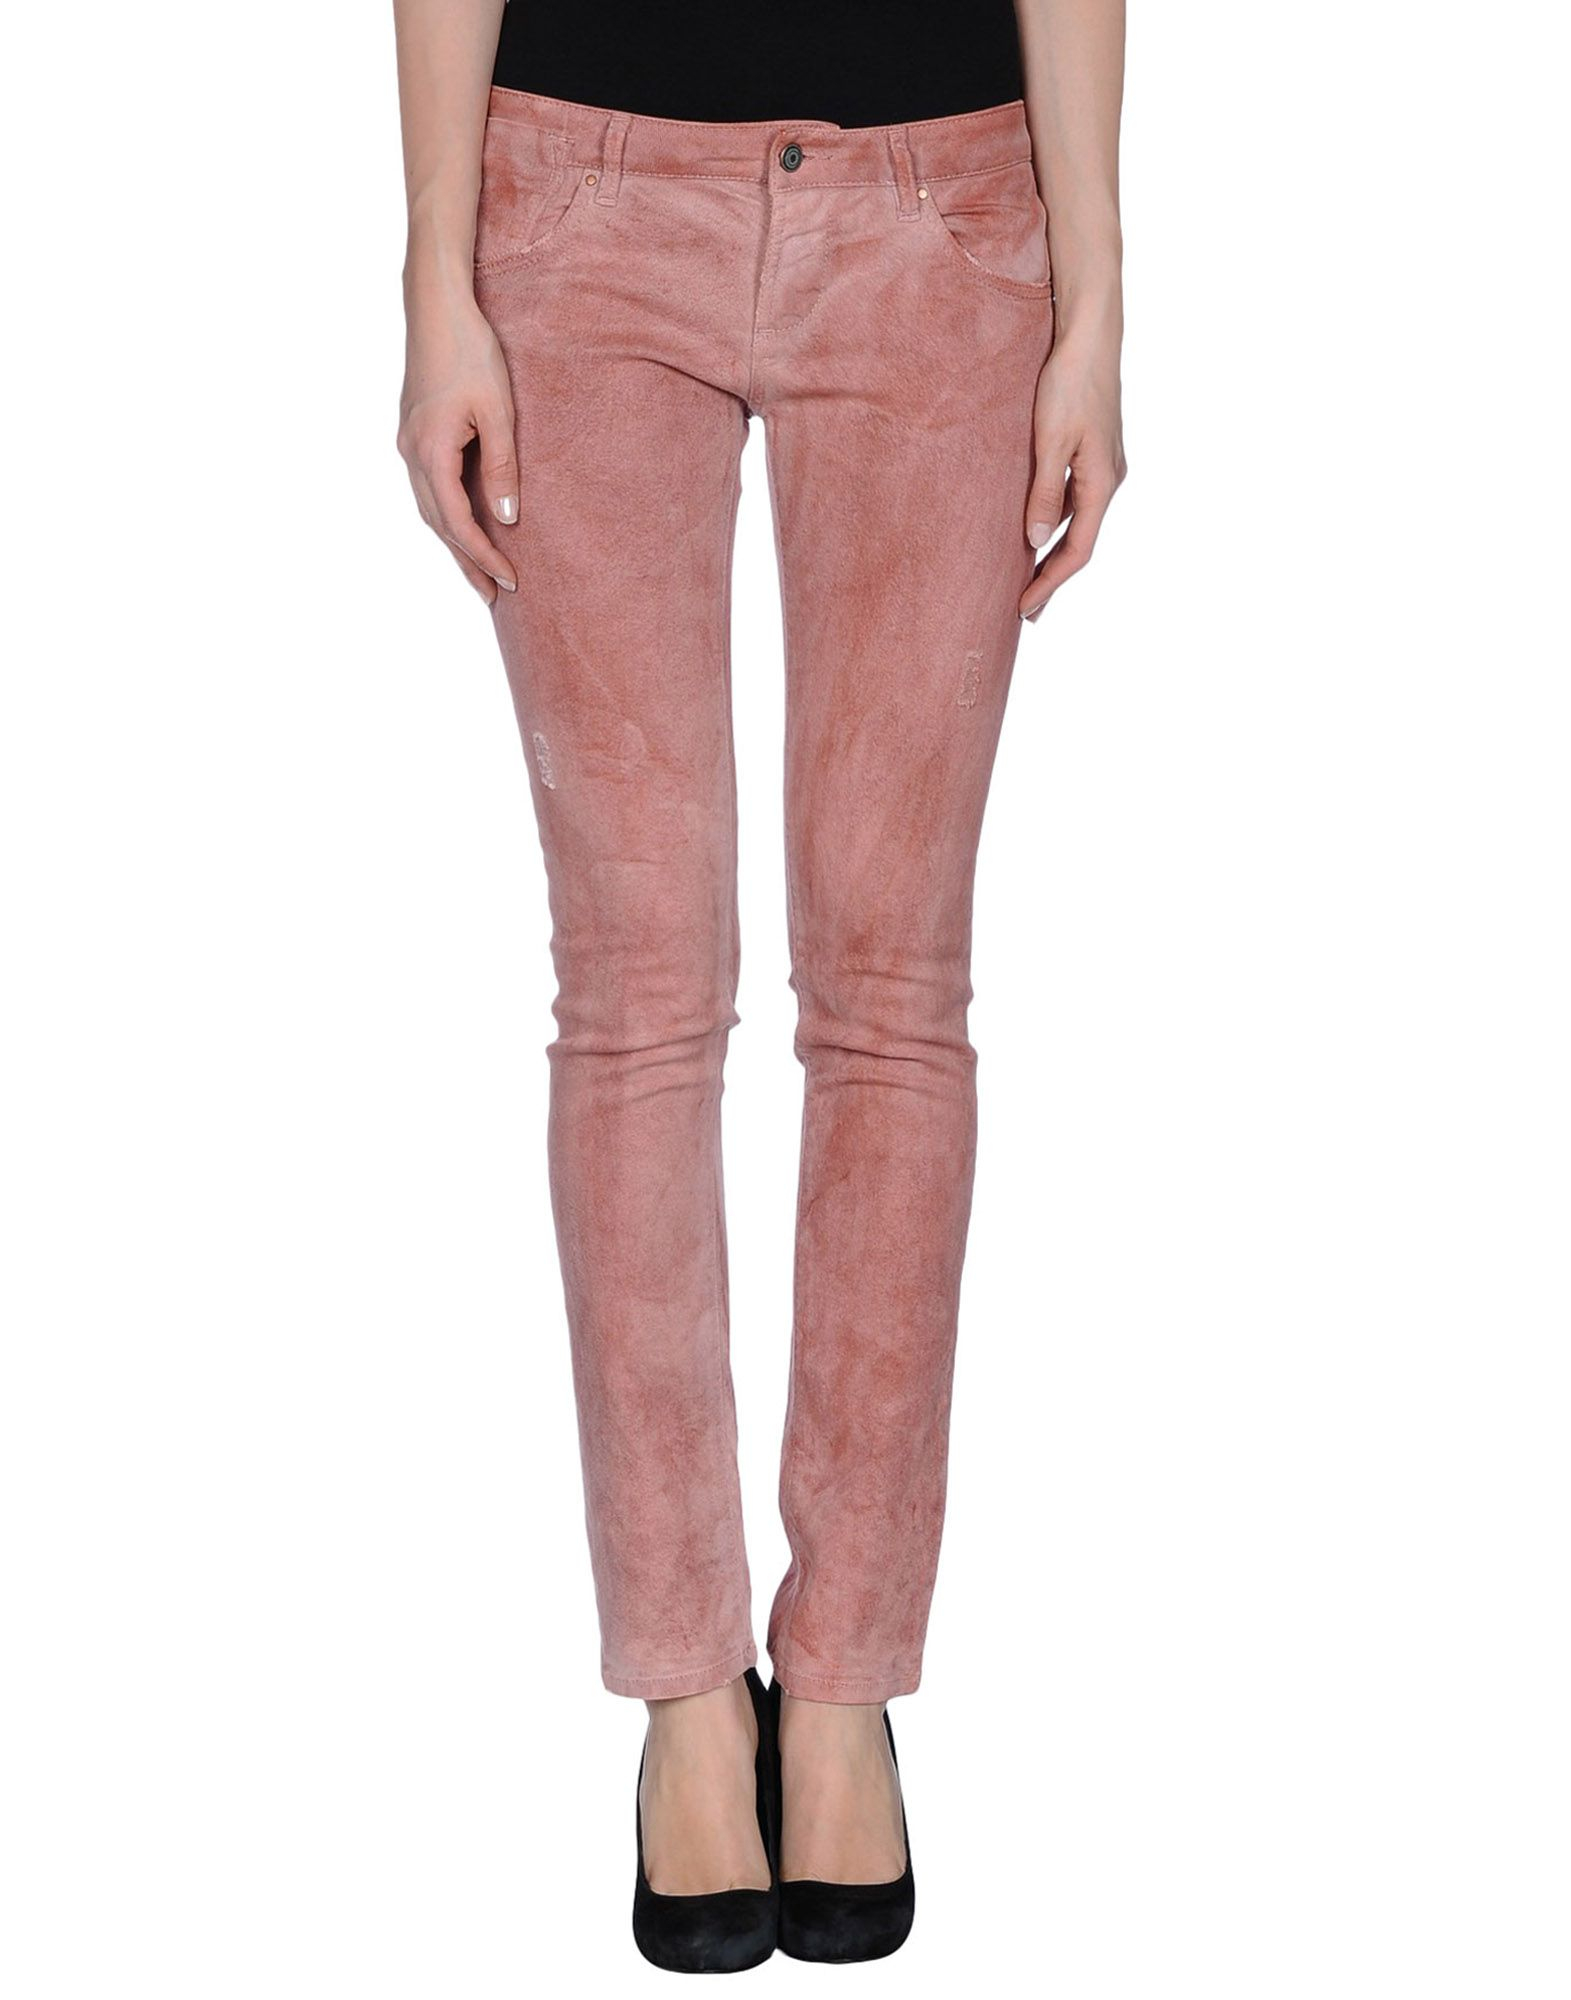 Daniele alessandrini Denim Trousers in Pink (Skin color) - Save 83% | Lyst